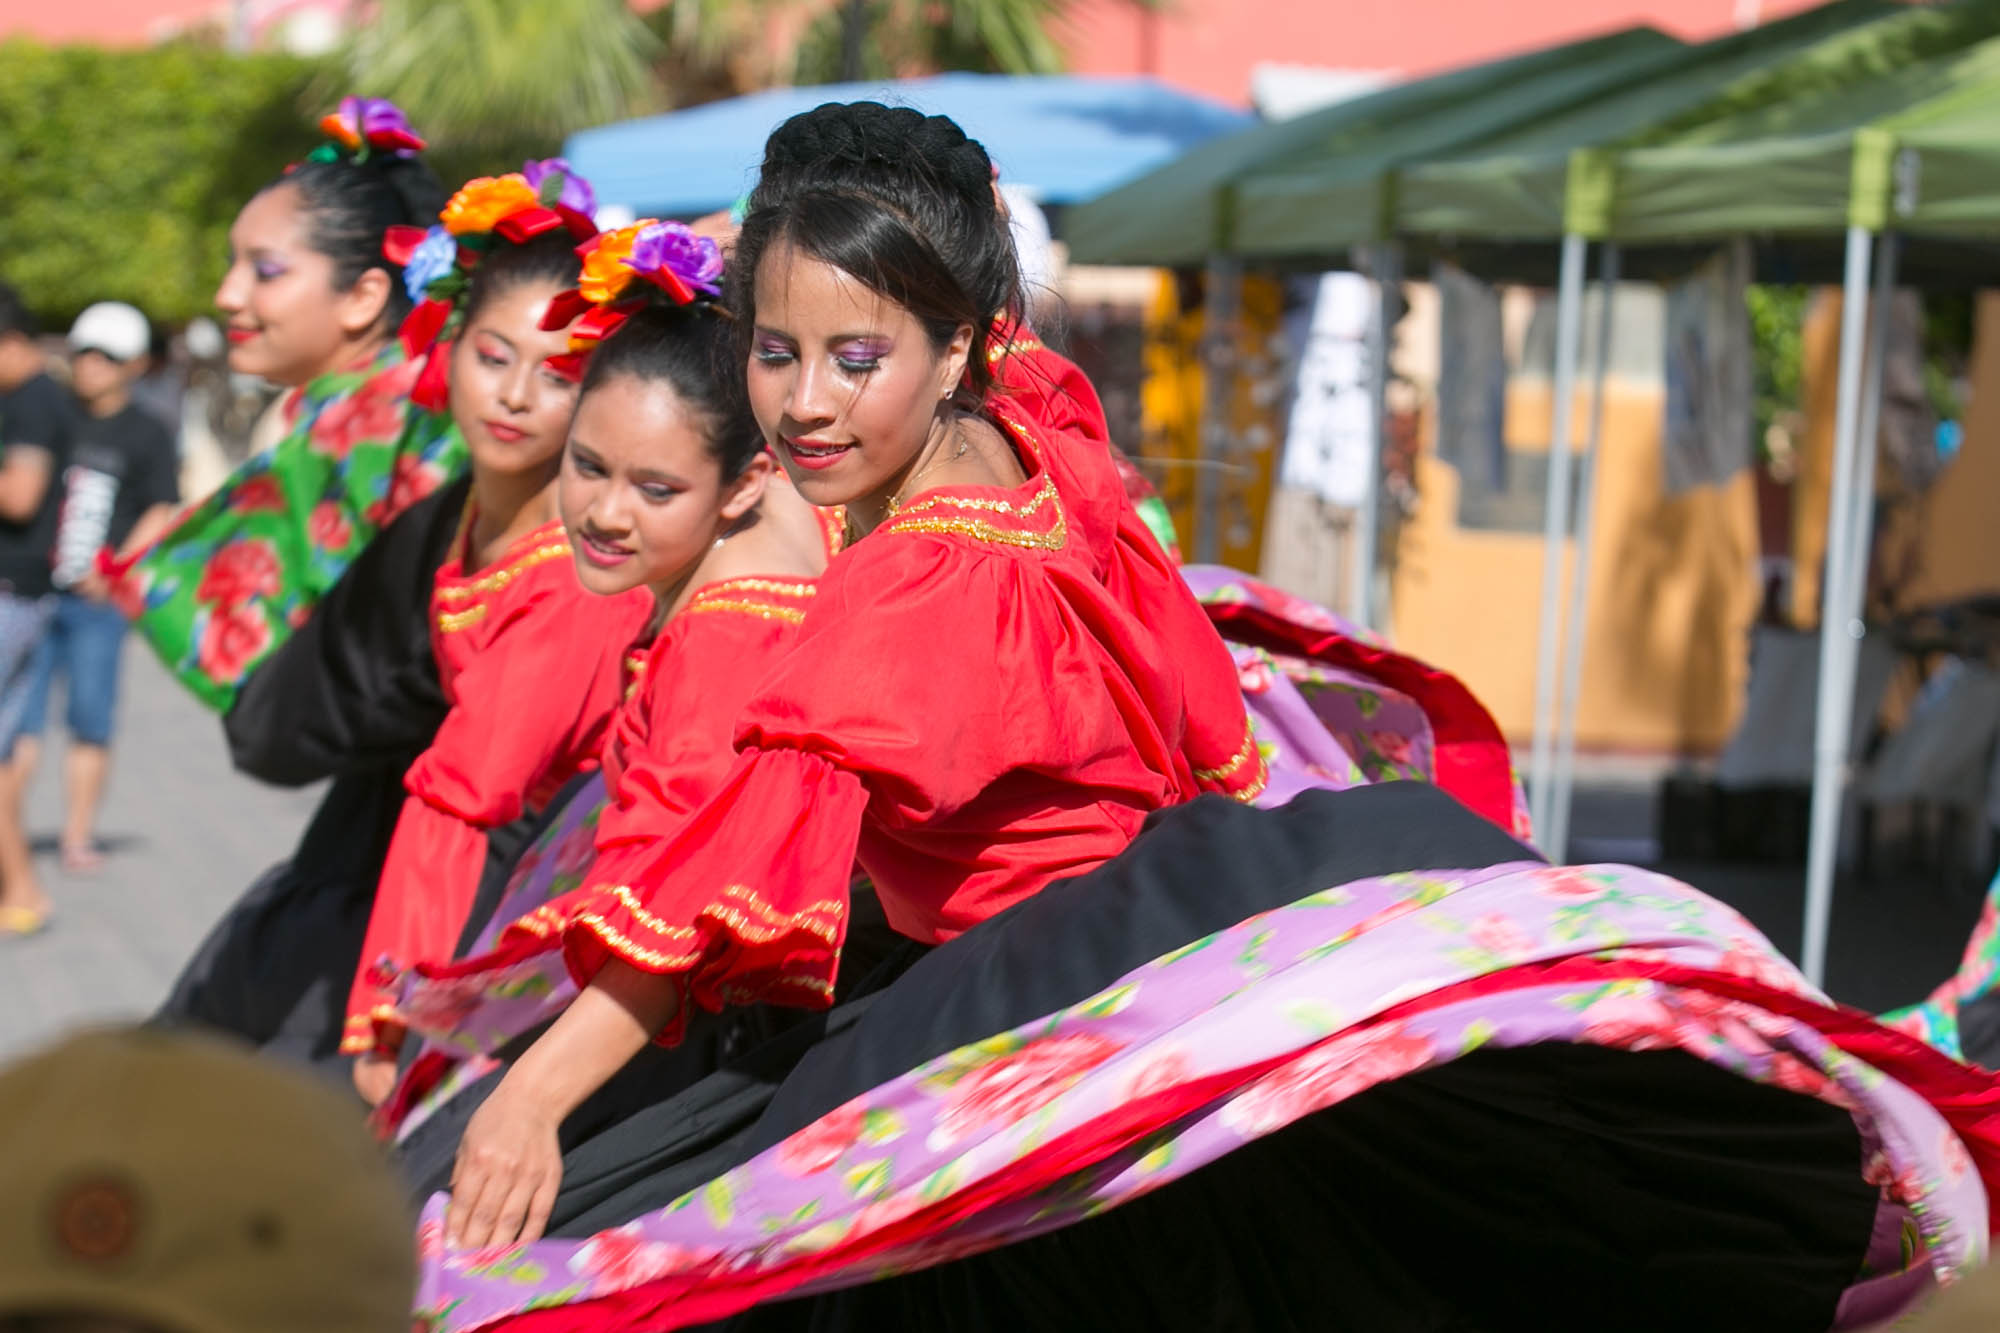 Dancers in Loreto, Mexico